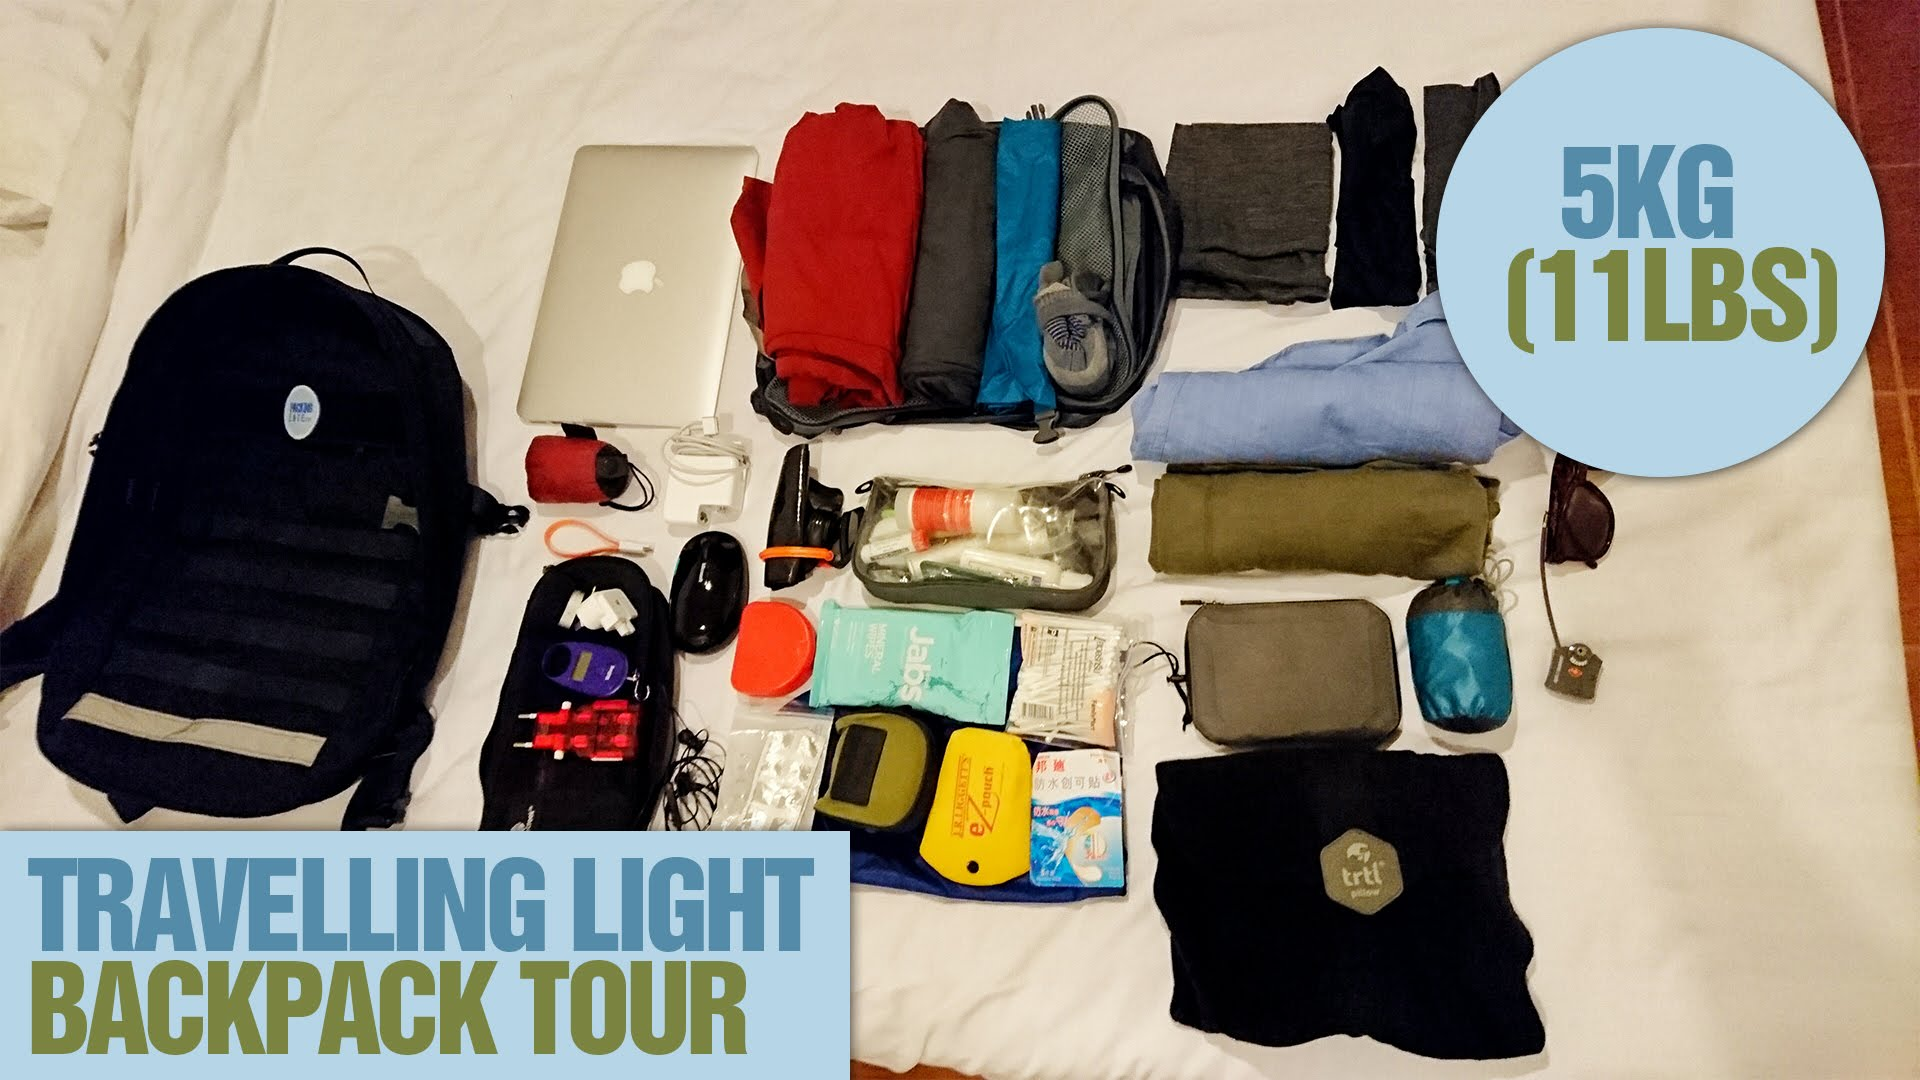 2016-Travelling-Light-5kg-11lbs-backpack-tour-with-a-laptop